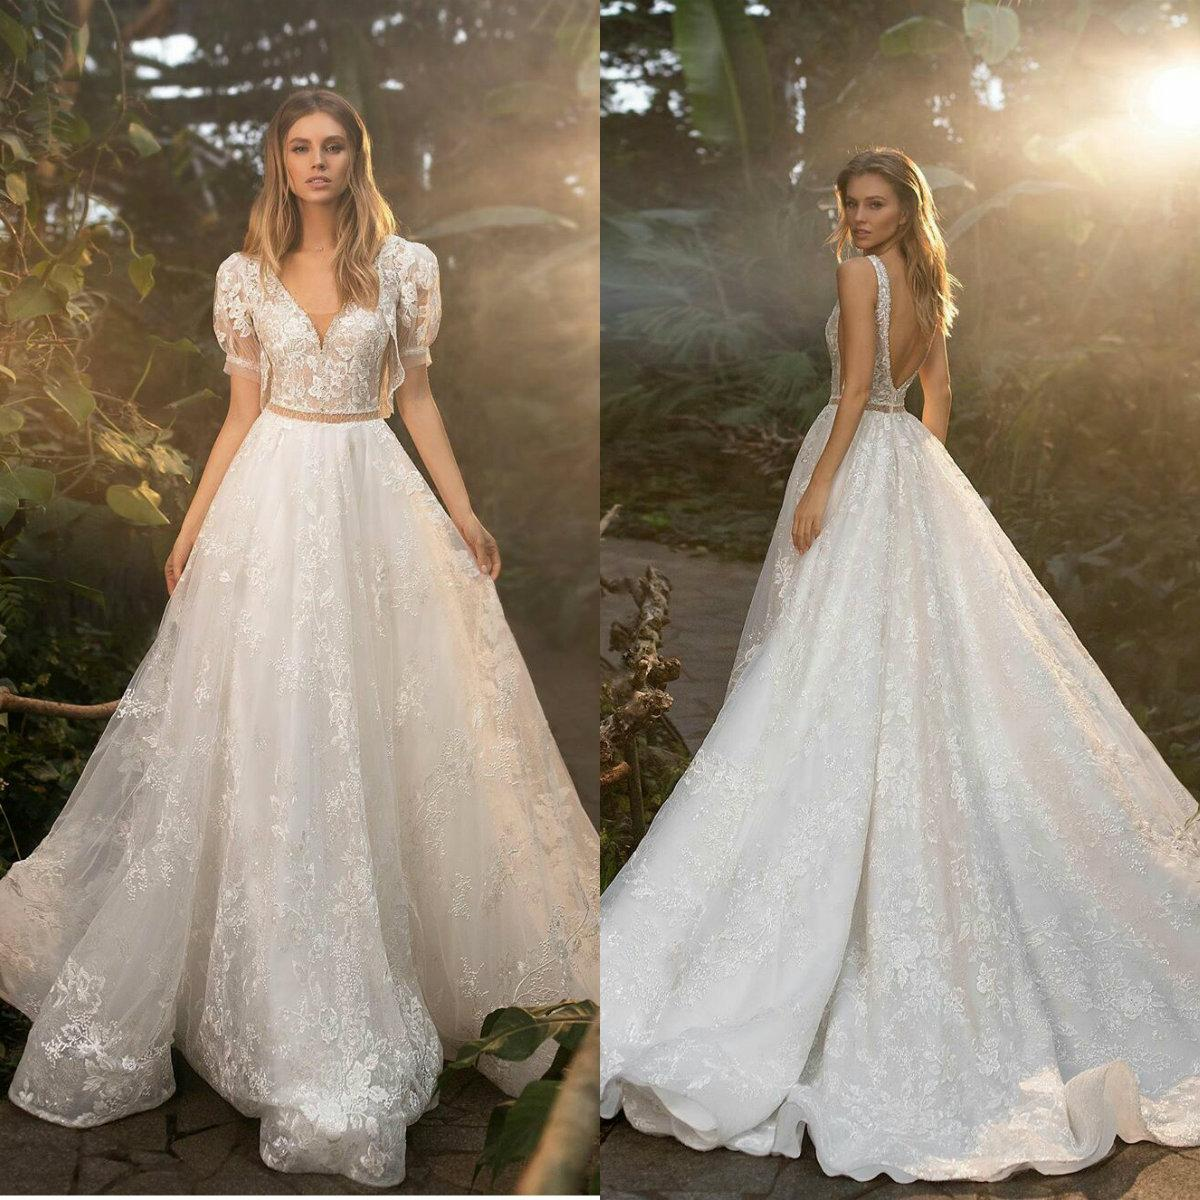 Beach Wedding Dresses Half Sleeves A Line Bridal Princess Gowns Plus Size 4 6 8 10 12 14 16 18 20 22 24